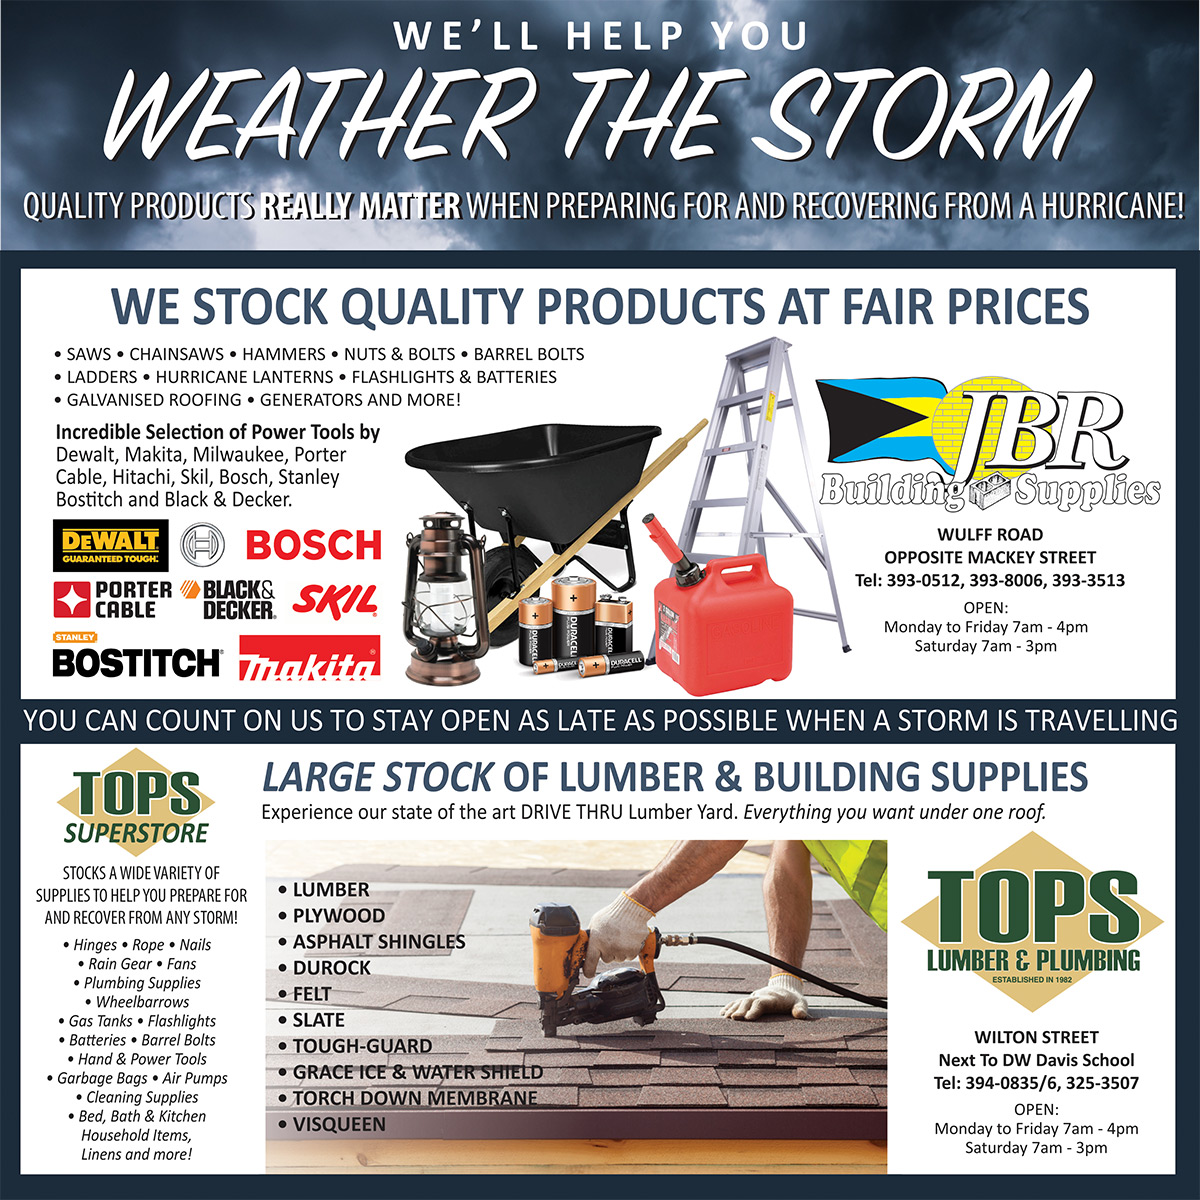 Let JBR Help You Weather The Storm